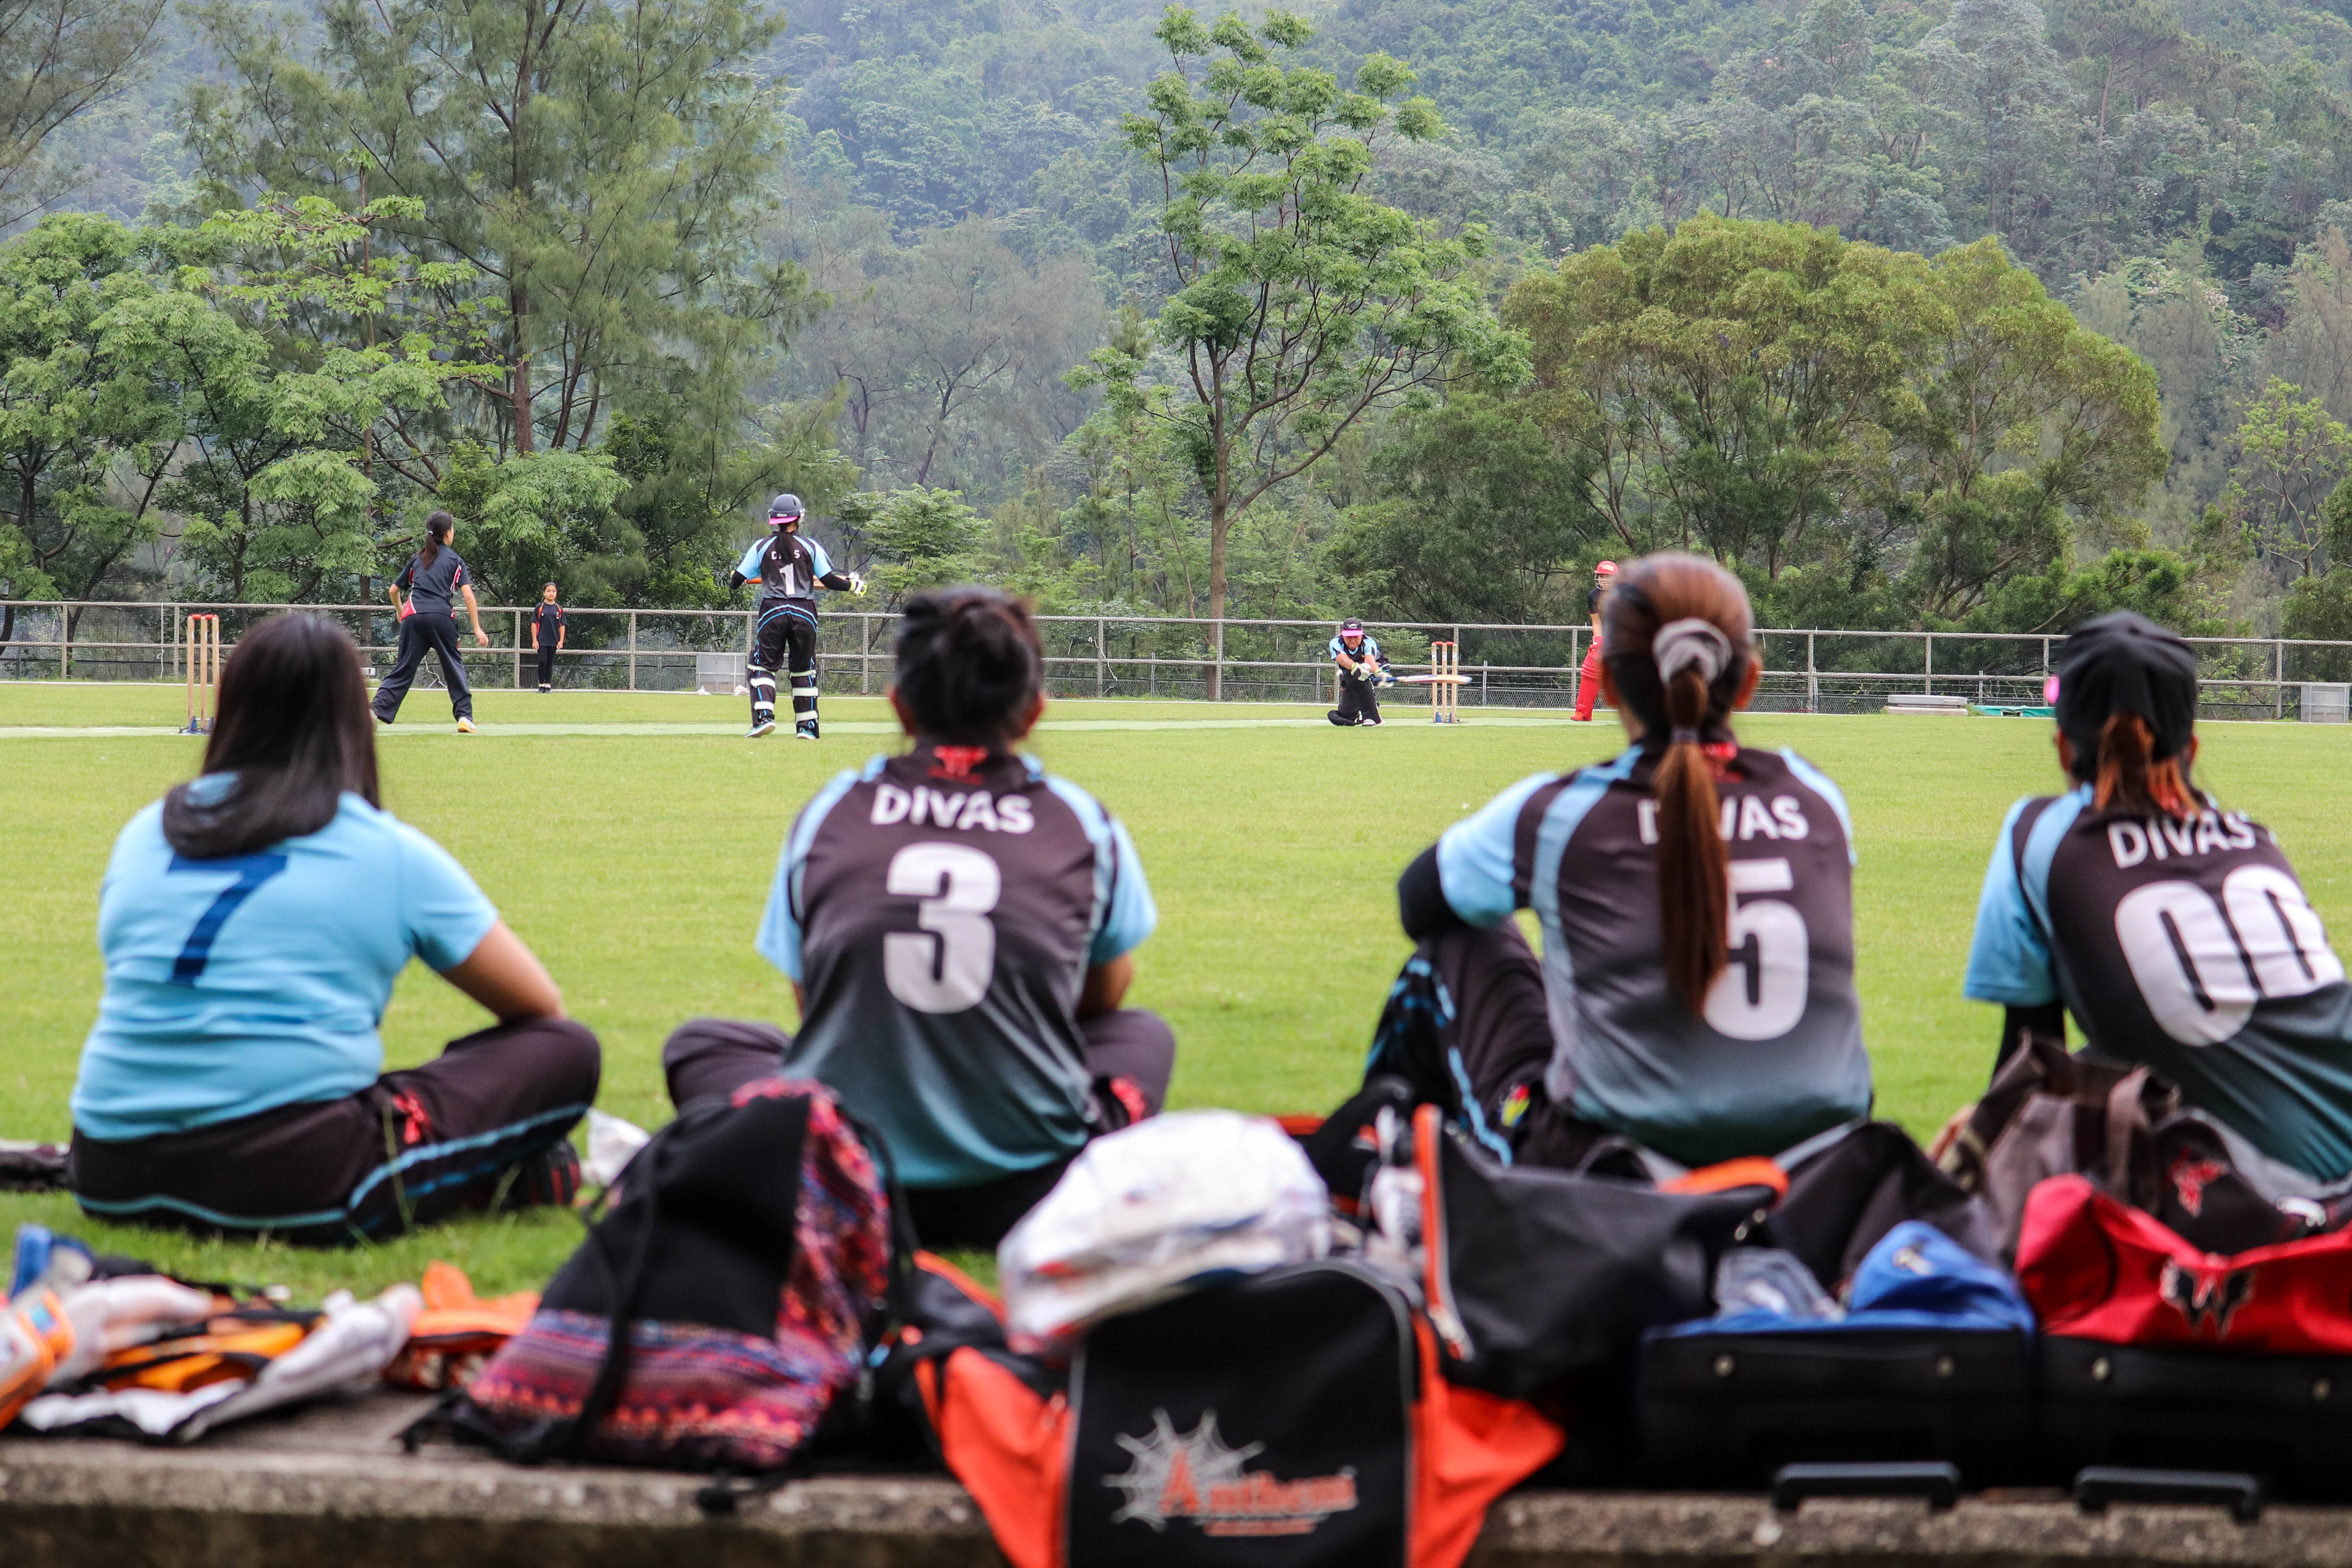 The SCC Divas in action against a local cricket team at Po Kong Village Road Park, Hong Kong, on April 28, 2019